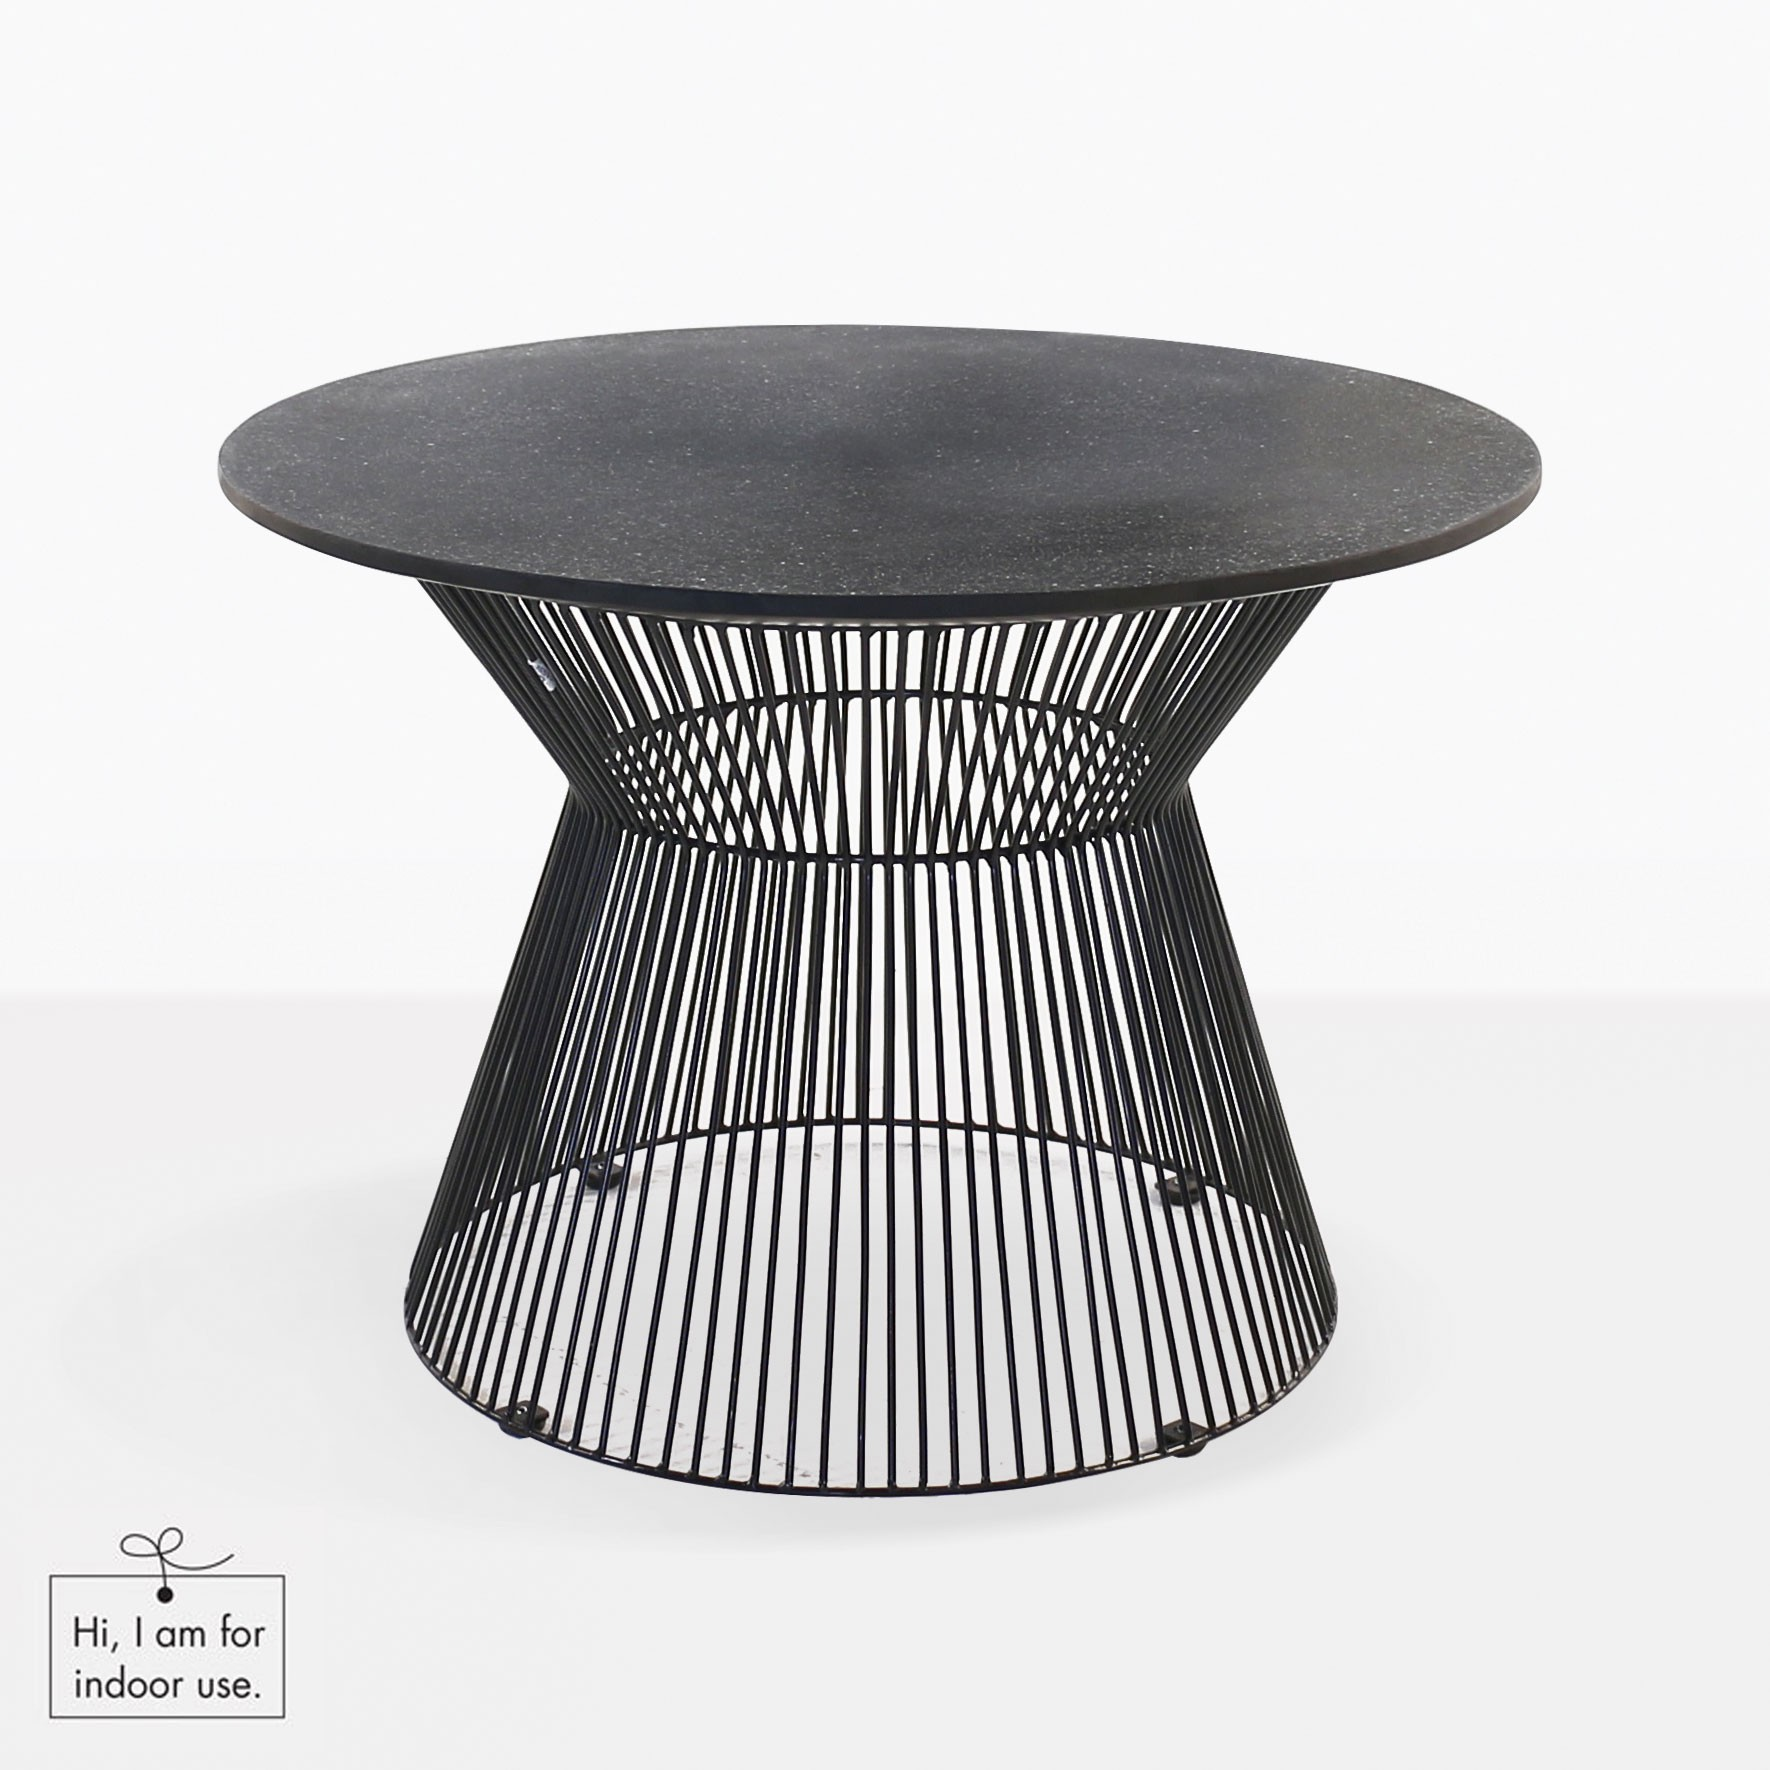 Deco Round Side Table Black Sand Outdoor Furniture Teak Warehouse